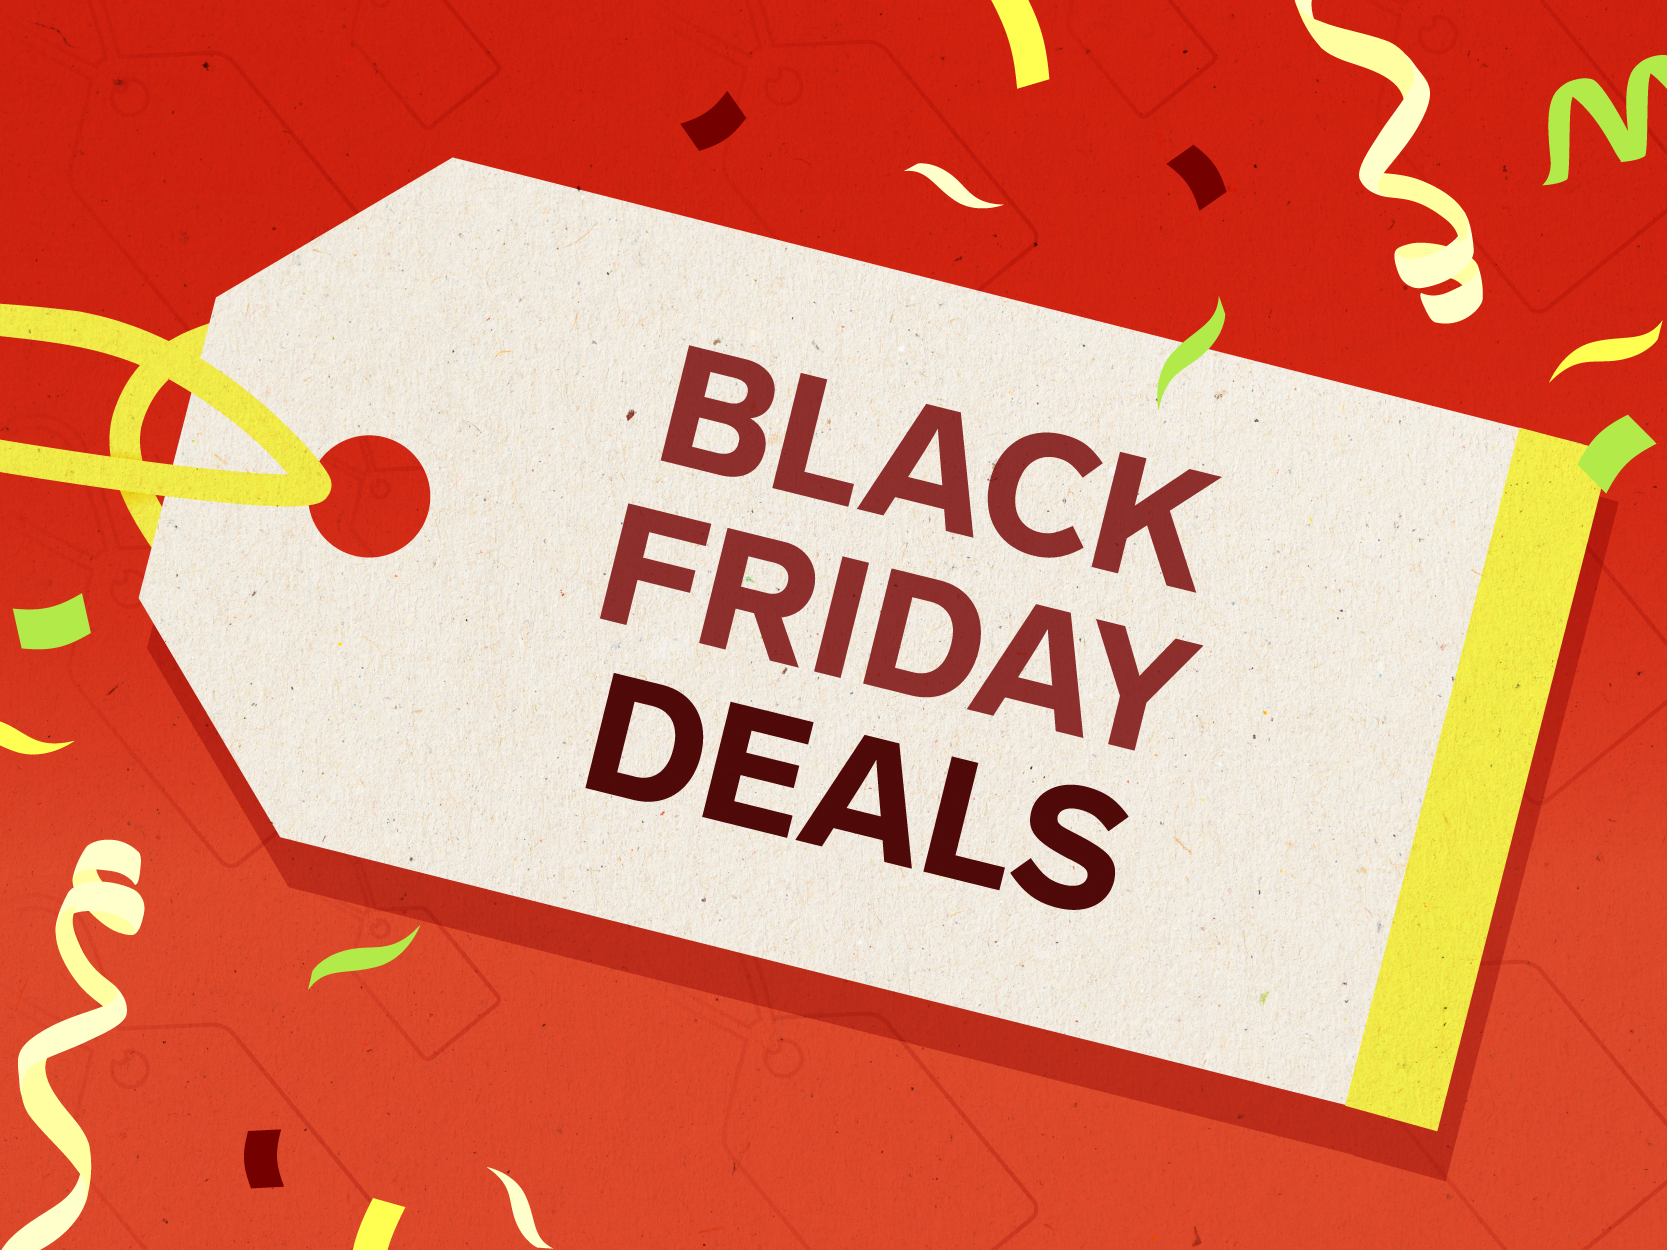 Amazon Black Friday deals are already live now — save on Eero routers, Sonos speakers, Apple iPads, and more